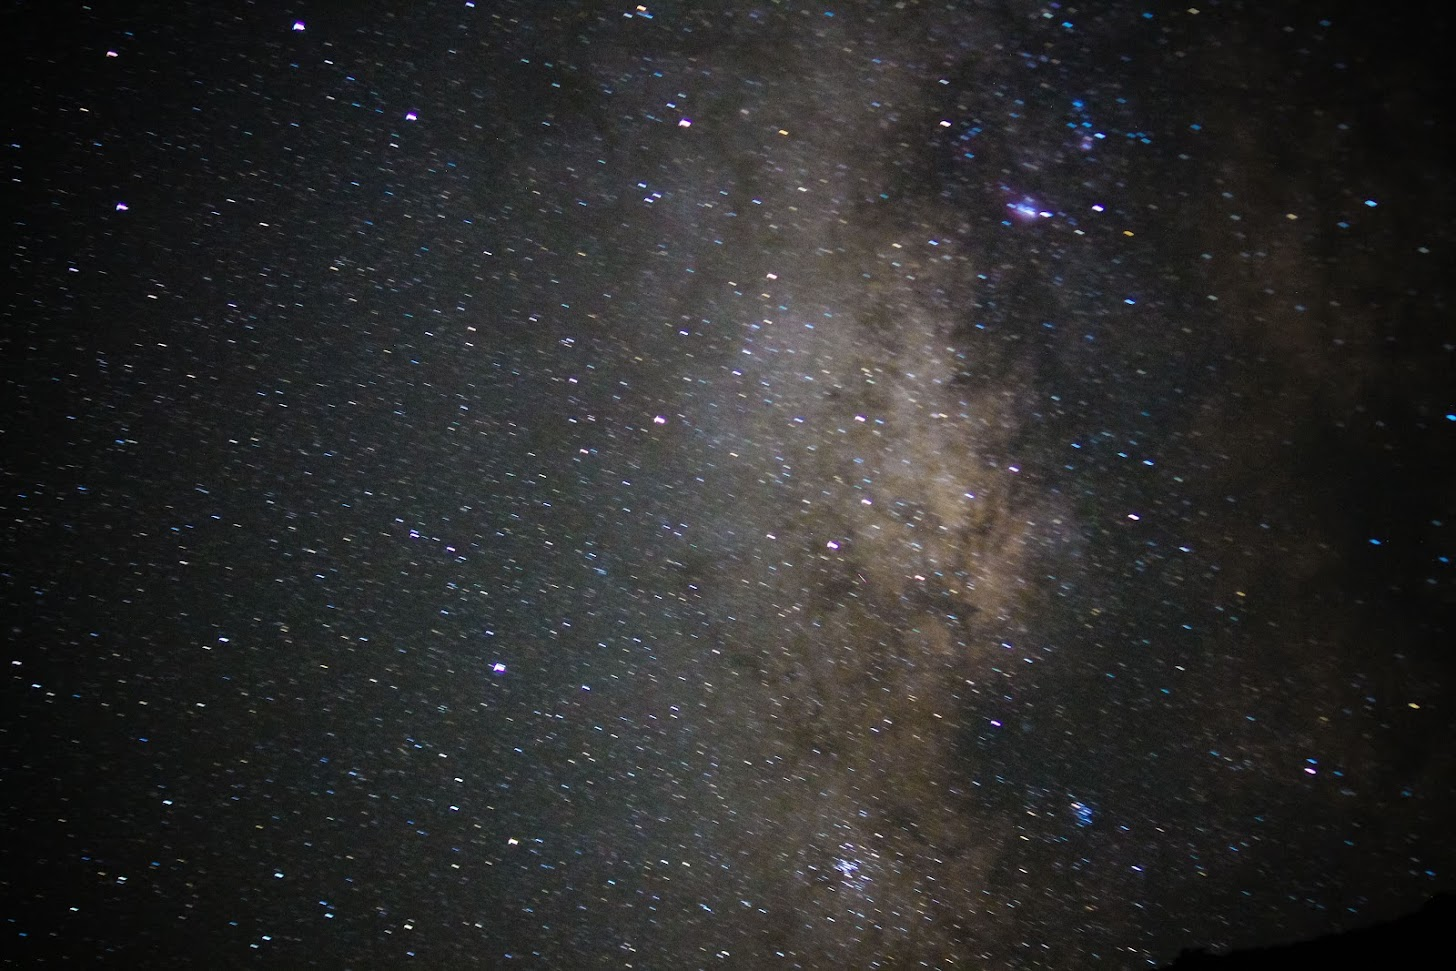 Blurry shot of milkyway